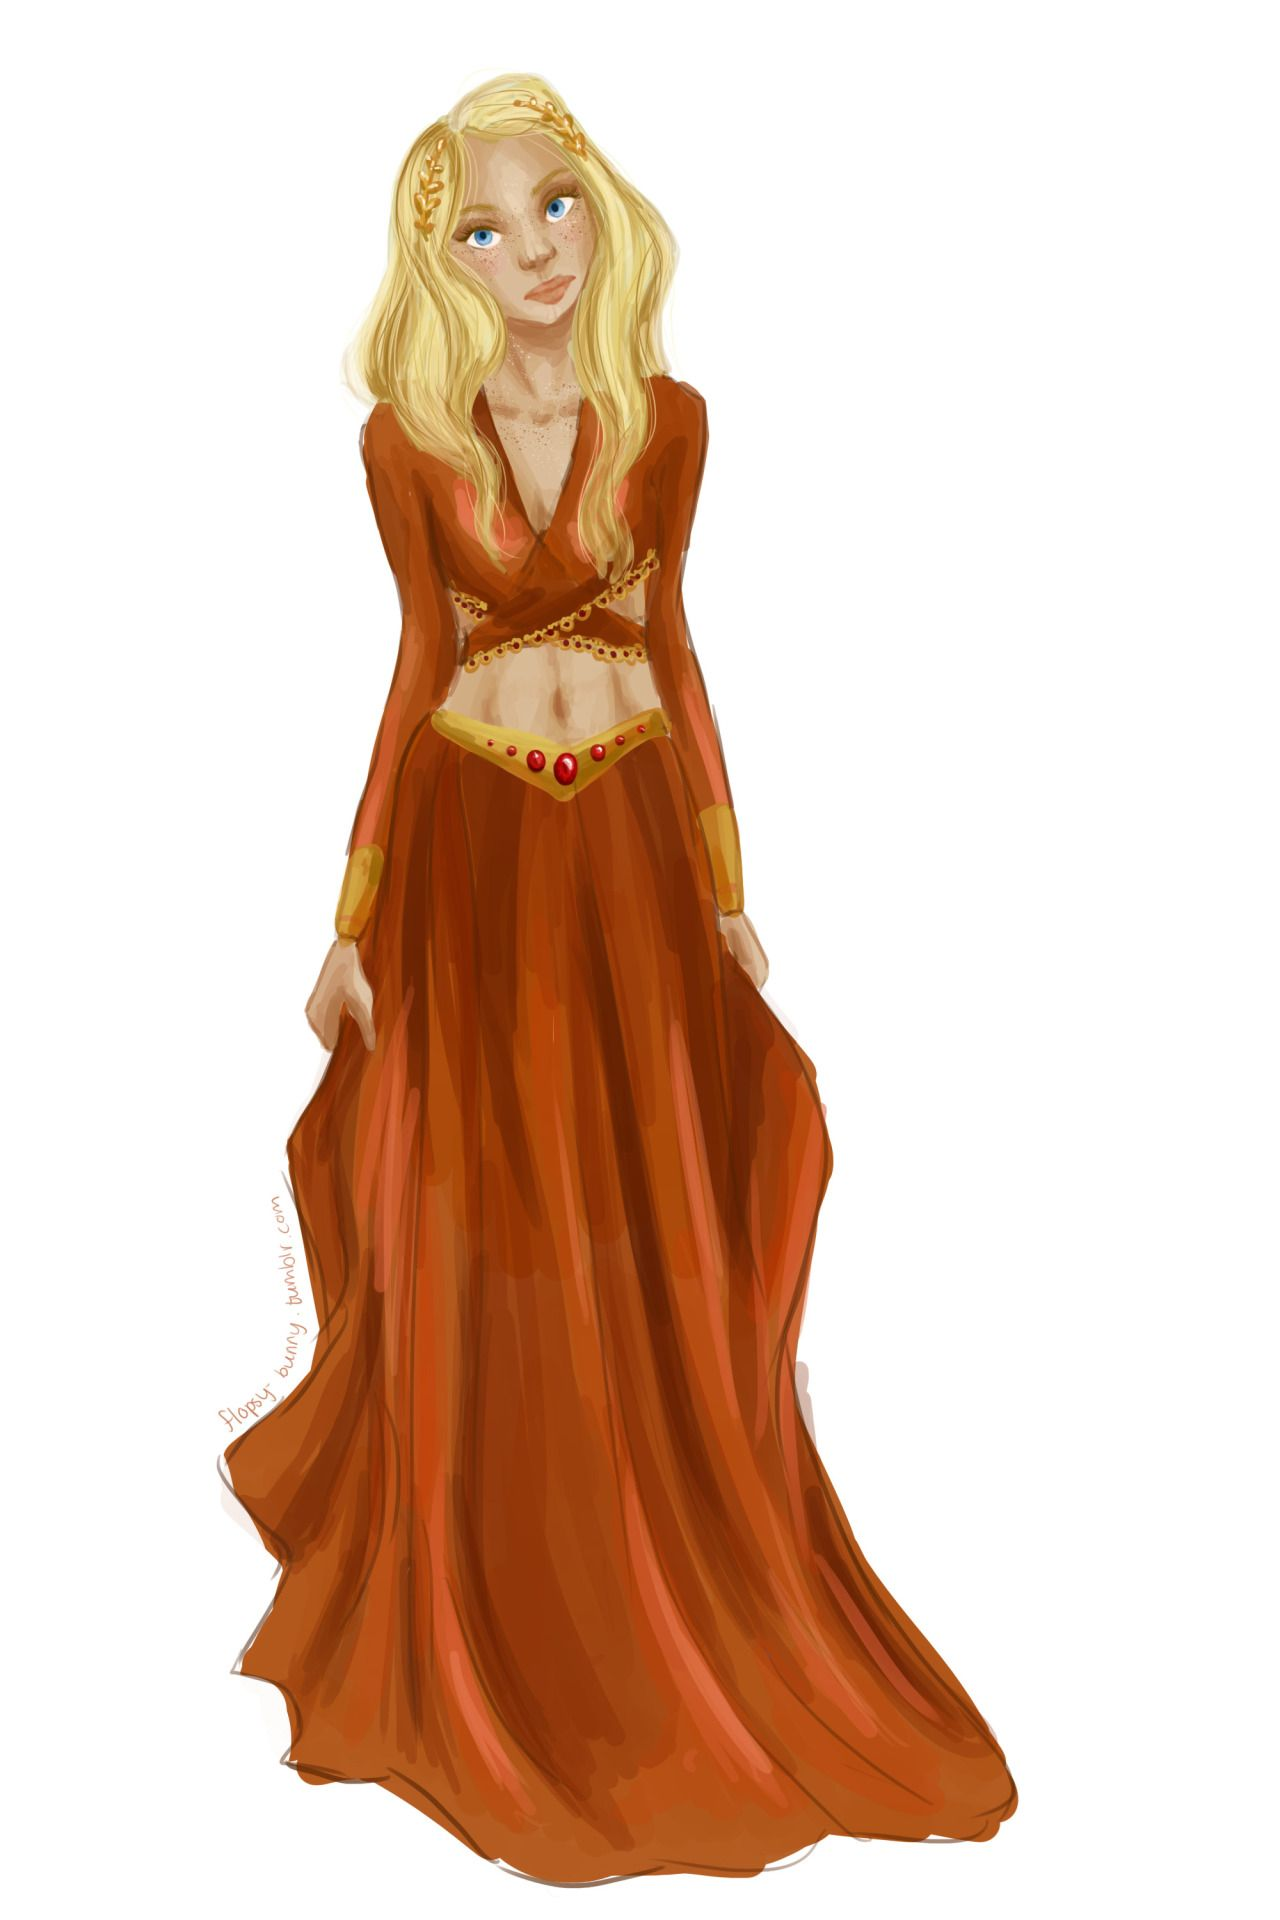 3 cups of coffee later: Mor bby!! i took a bit of artistic license with this dress. its loosely inspired by the inner circle's house of wind dinner. Whos next. I DONT KNOW YET. Coffee is not good for me.